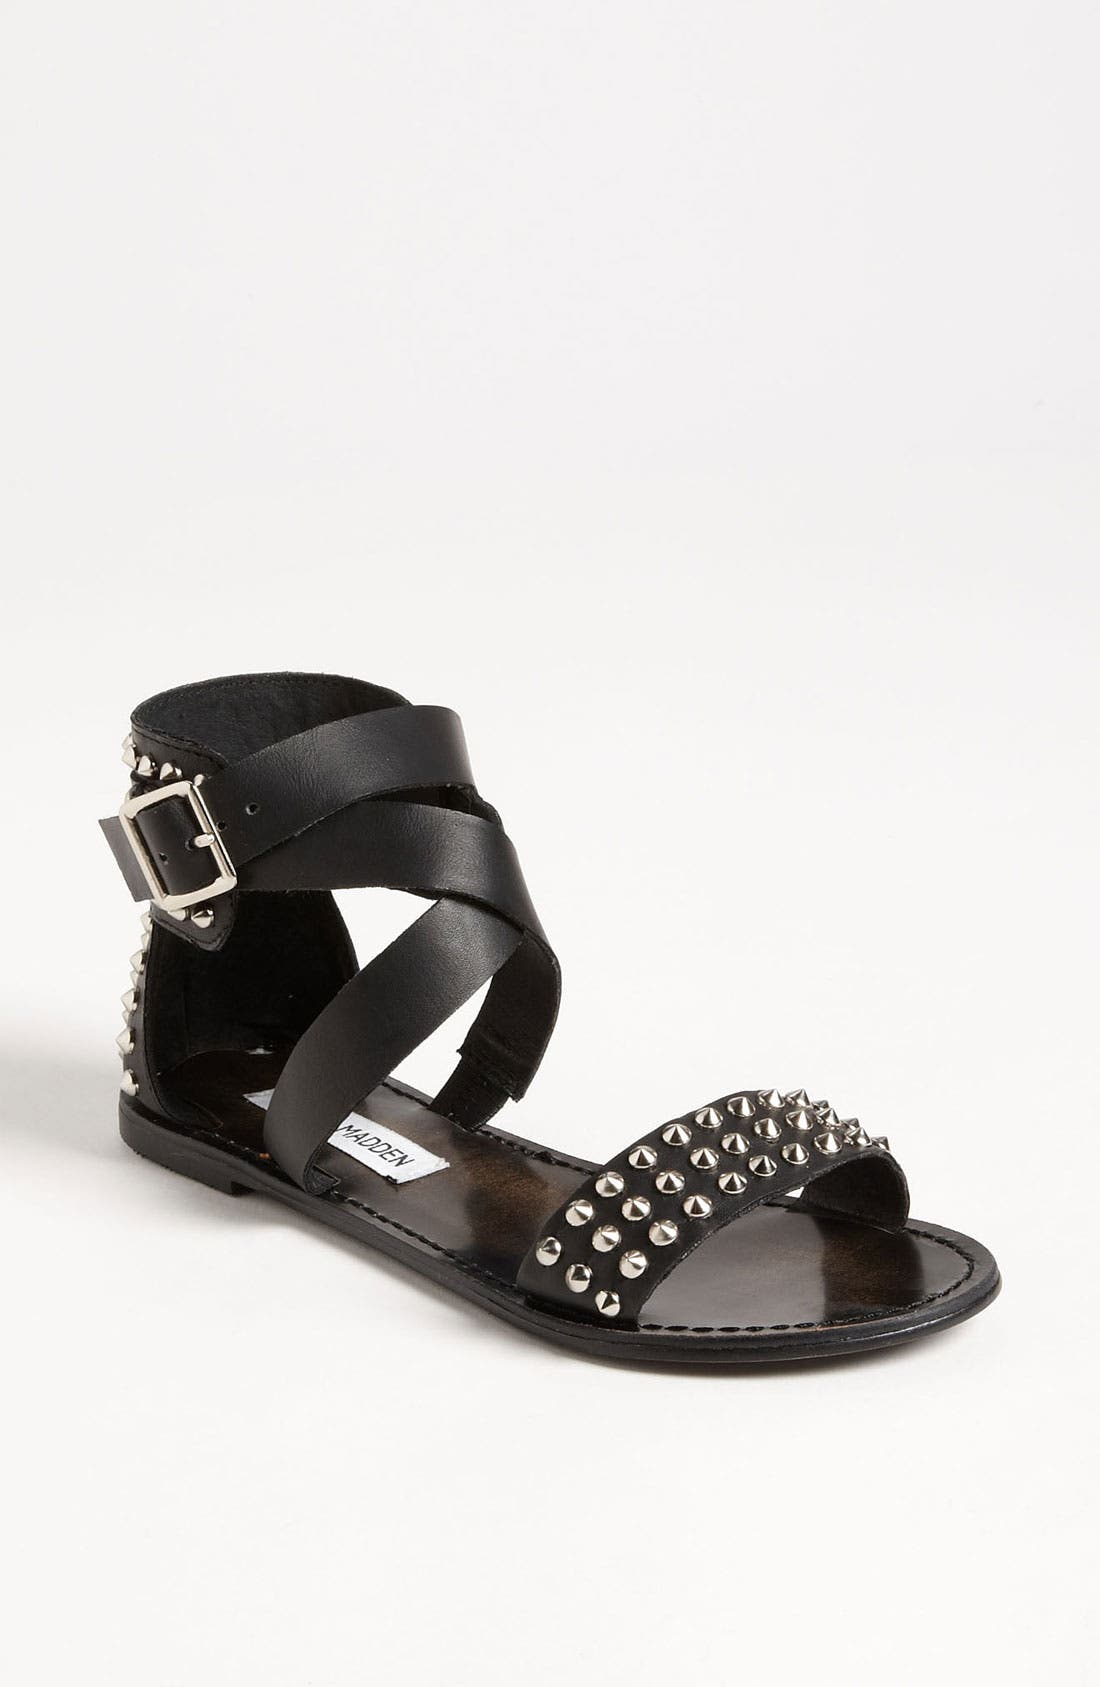 'Buddies' Sandal,                         Main,                         color, Black